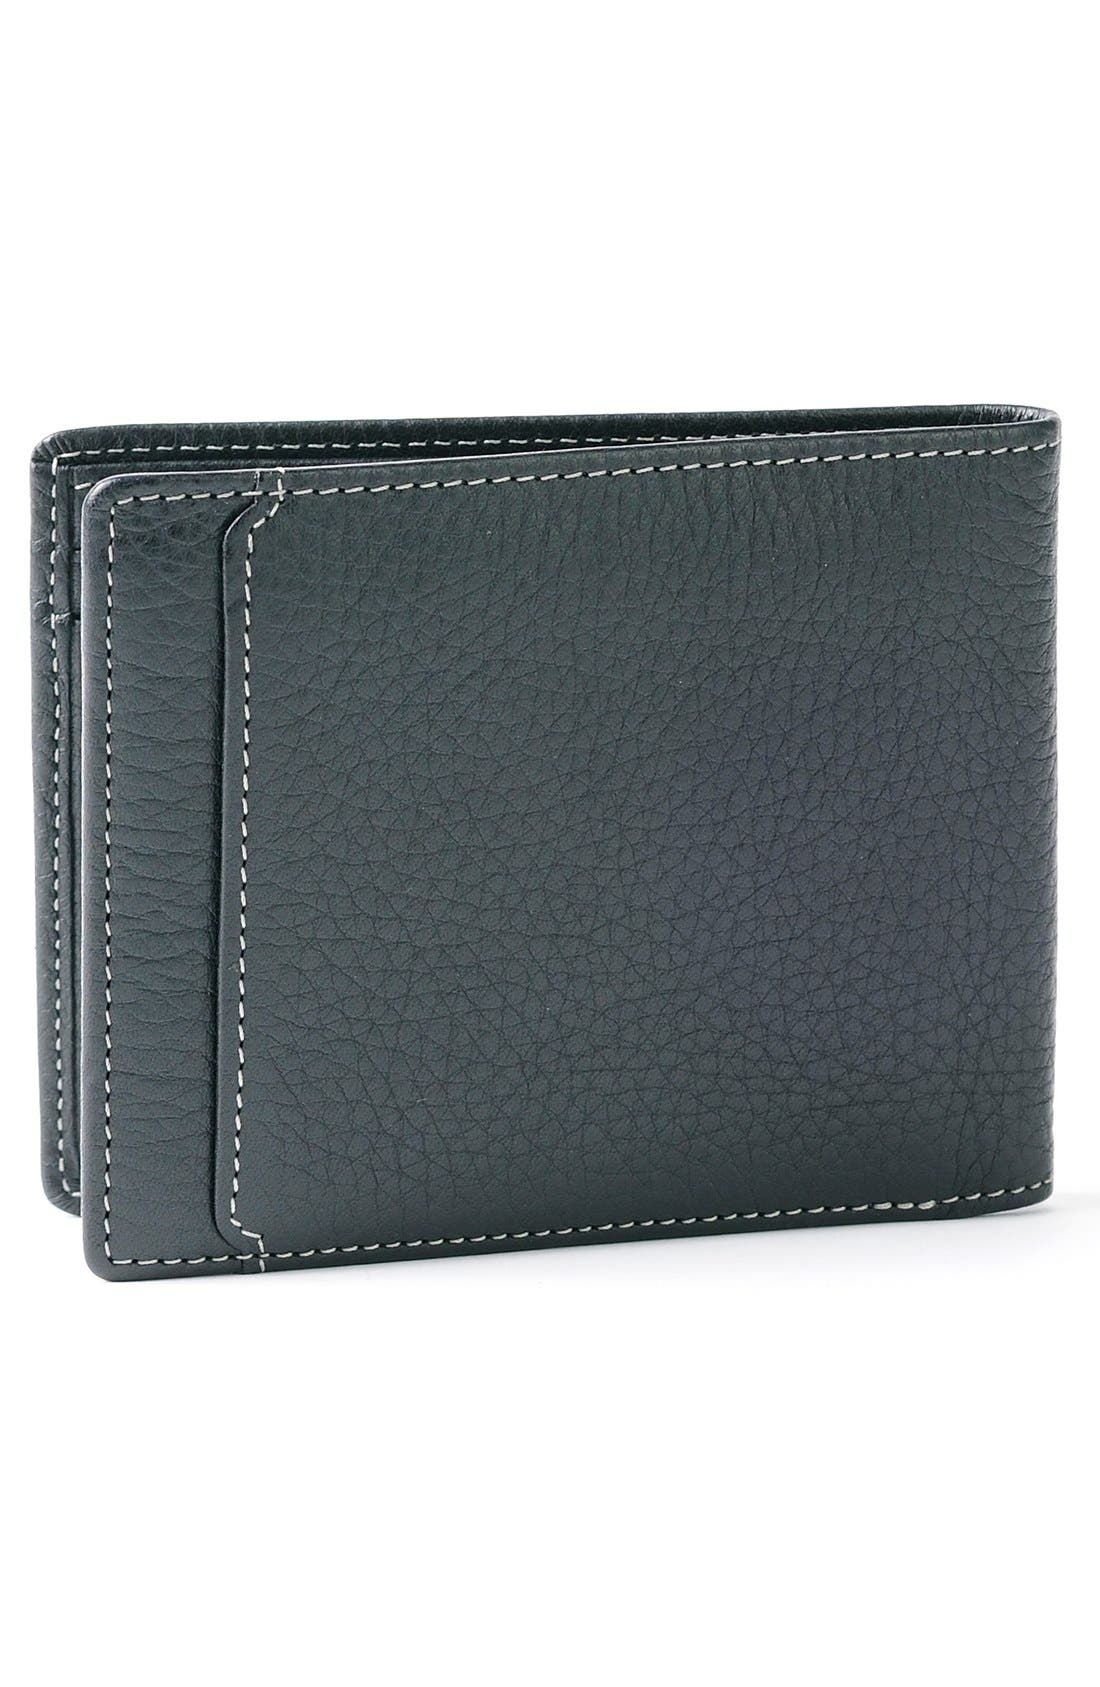 'Tyler' RFID Wallet,                             Alternate thumbnail 3, color,                             BLACK